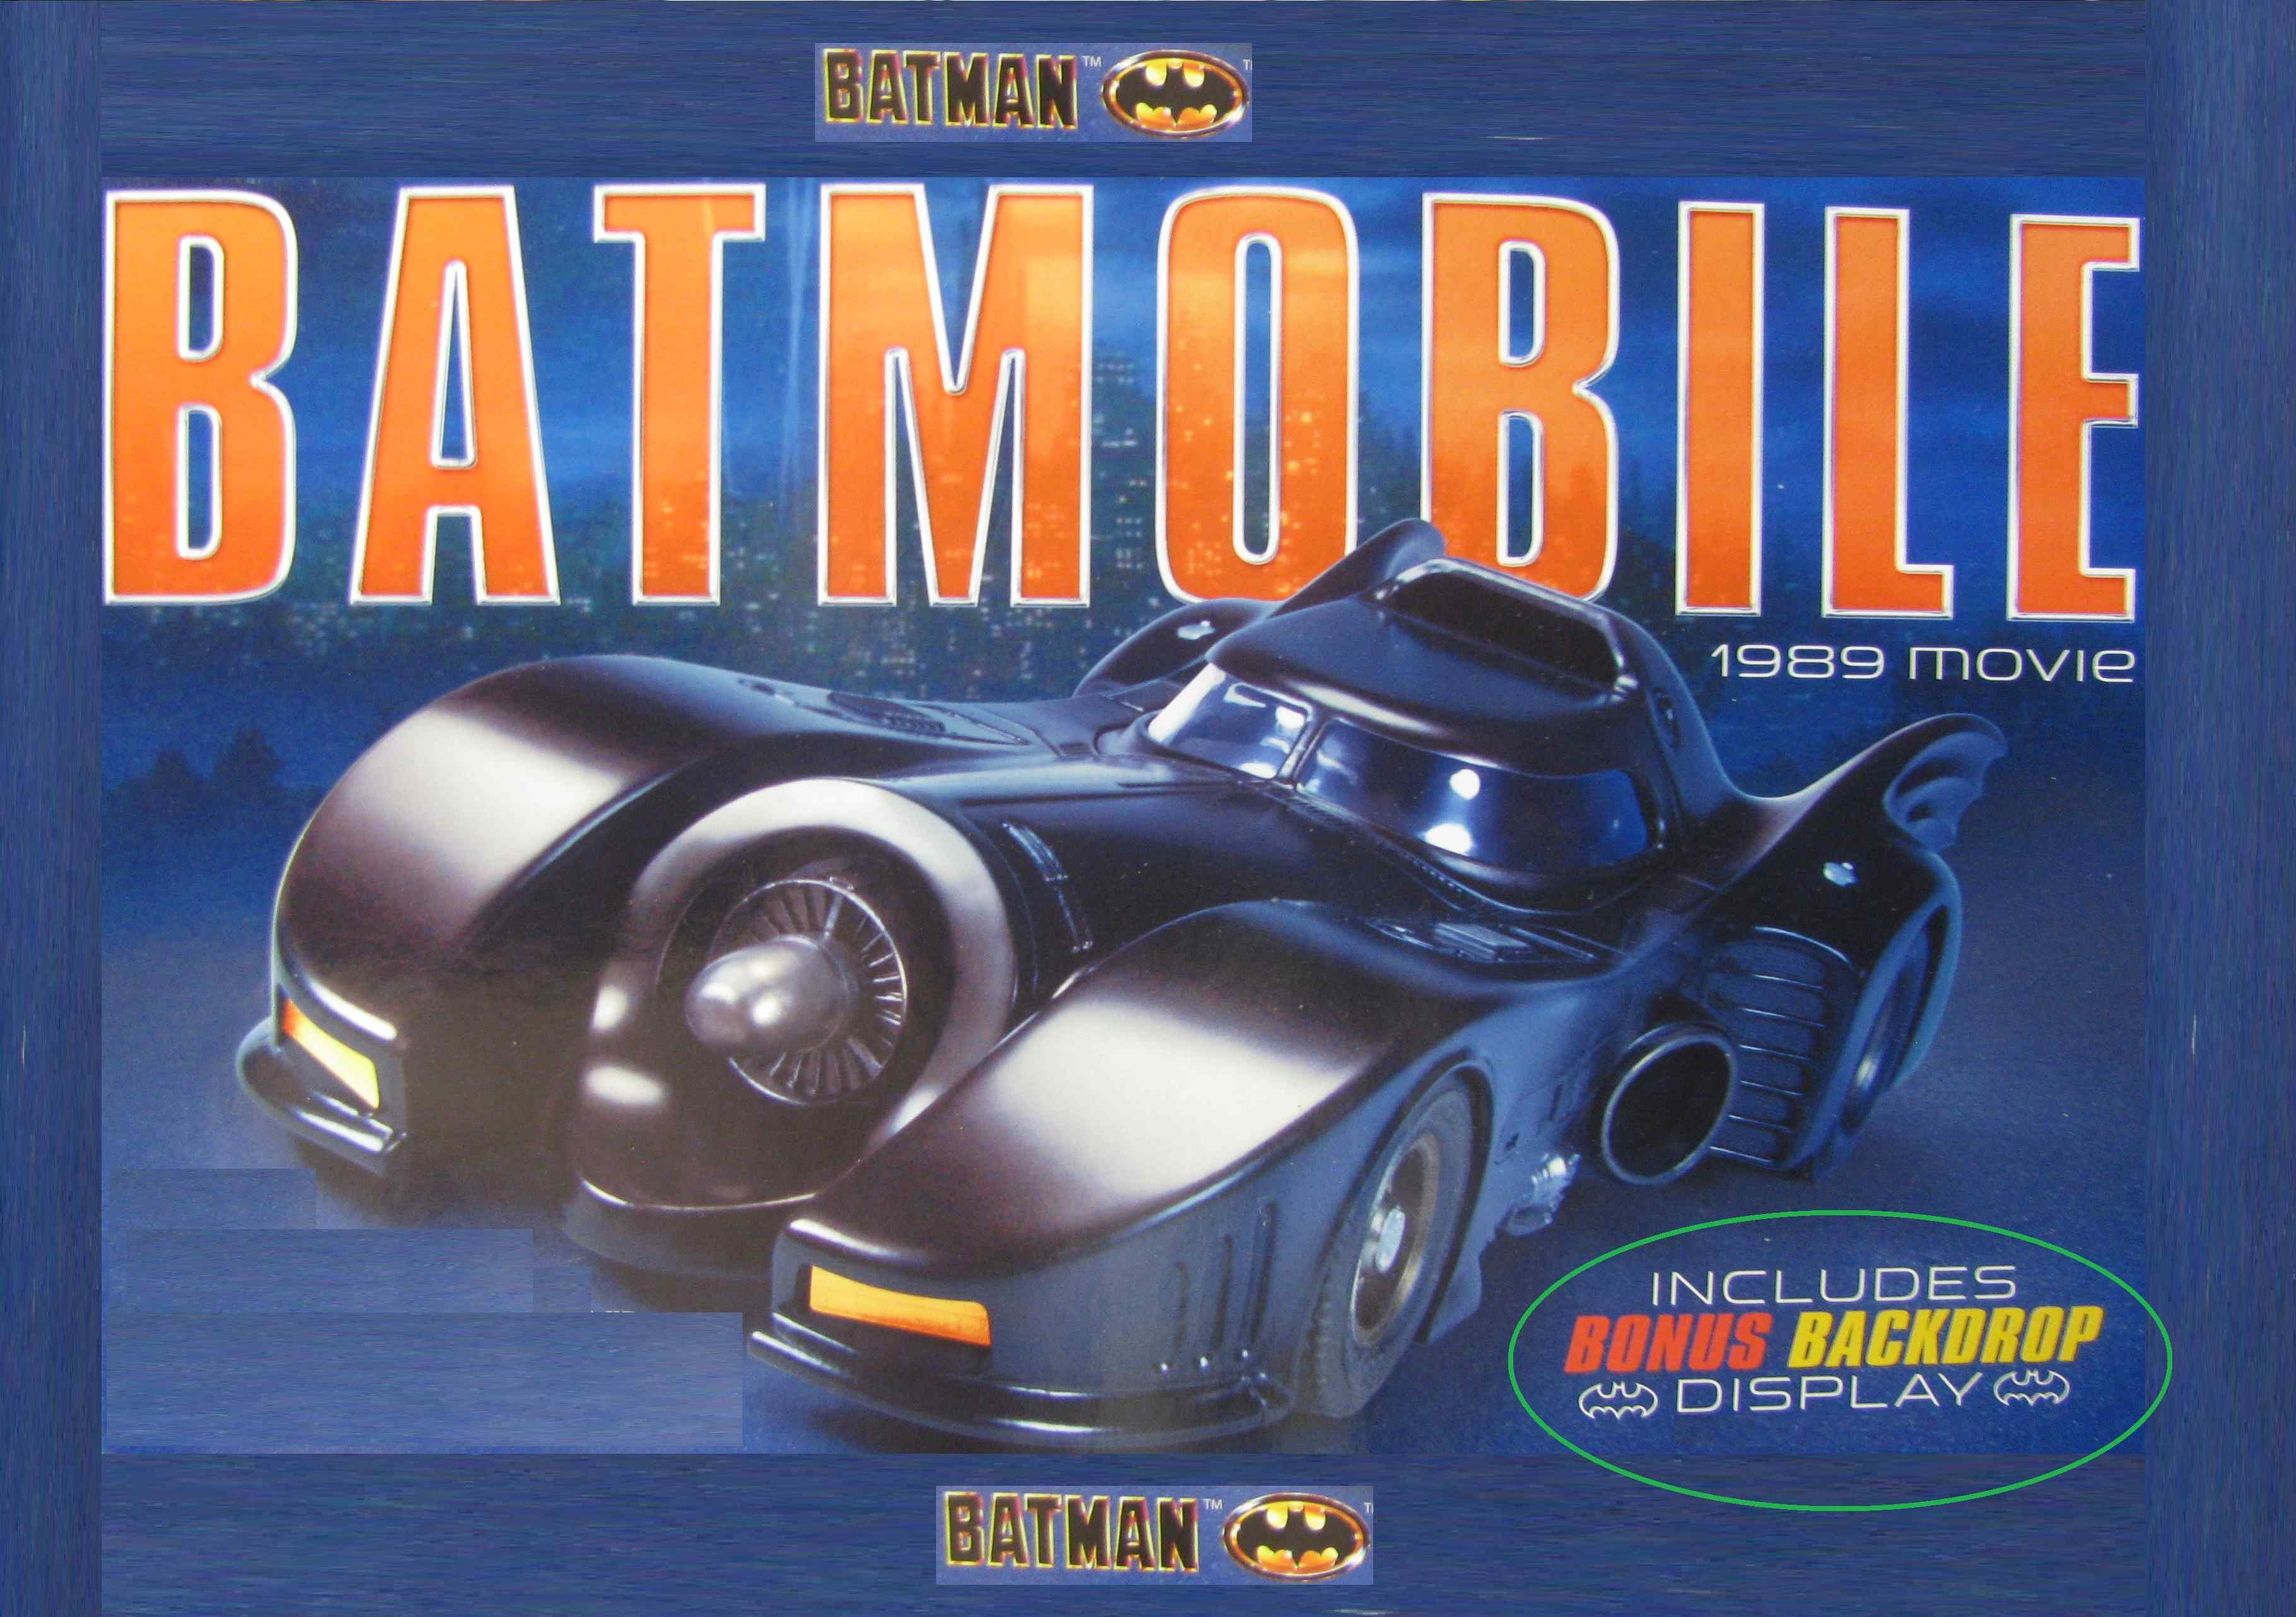 * SOLD * * SUMMER SALE * Batman Batmobile Slot Car Rare Limited Edition Movie Series 1:24 Scale *** INCLUDES HIGH QUALITY DISPLAY ***